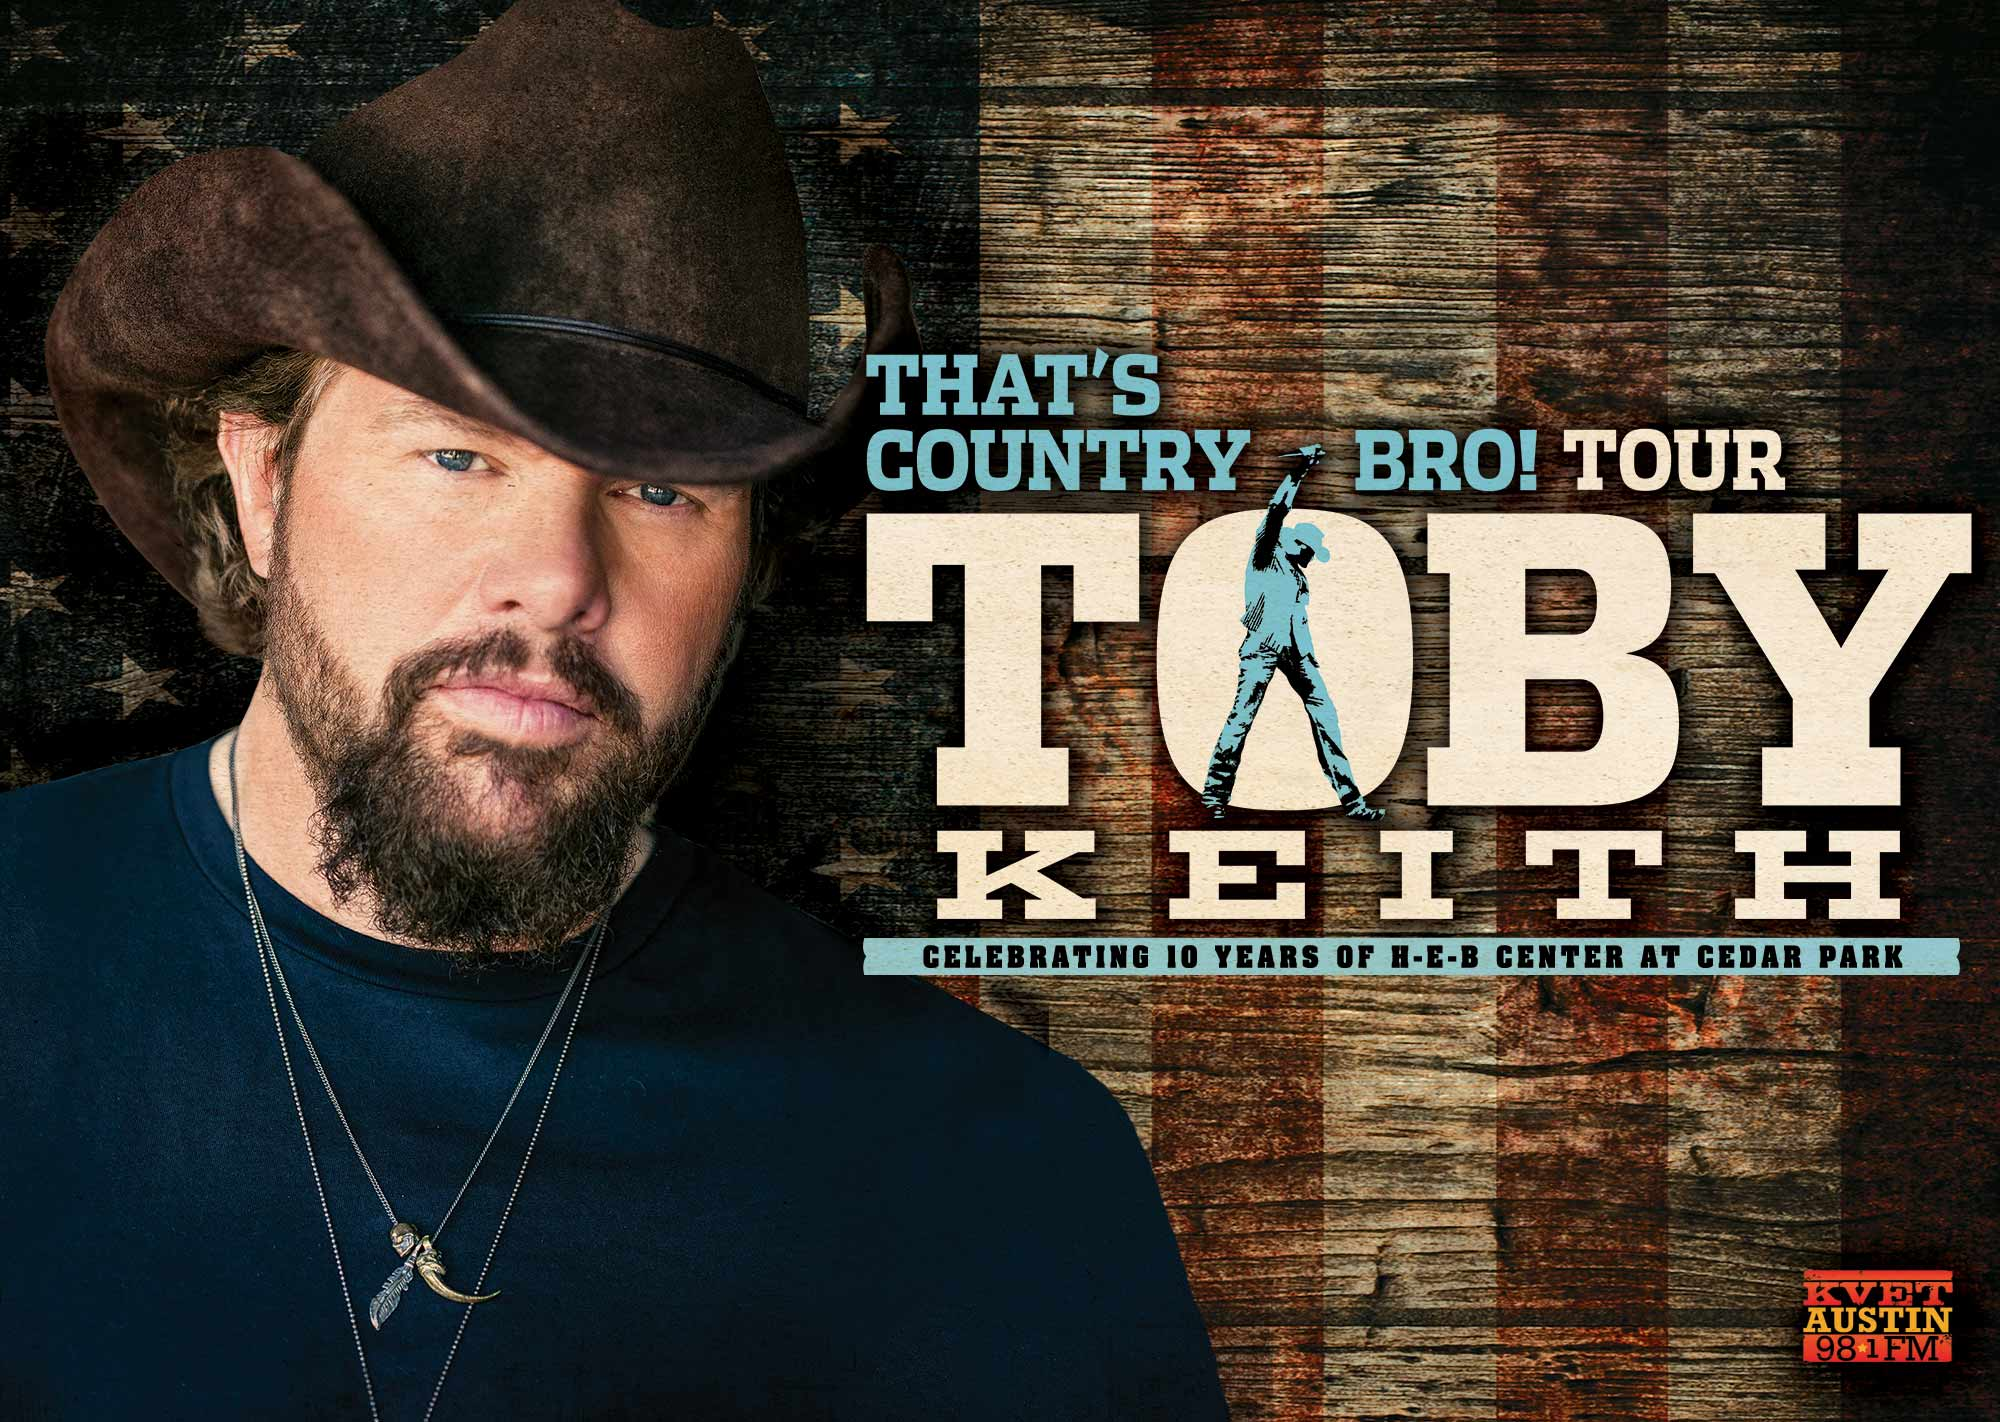 Toby Keith Headlines H-E-B Center at Cedar Park  10th Anniversary Concert